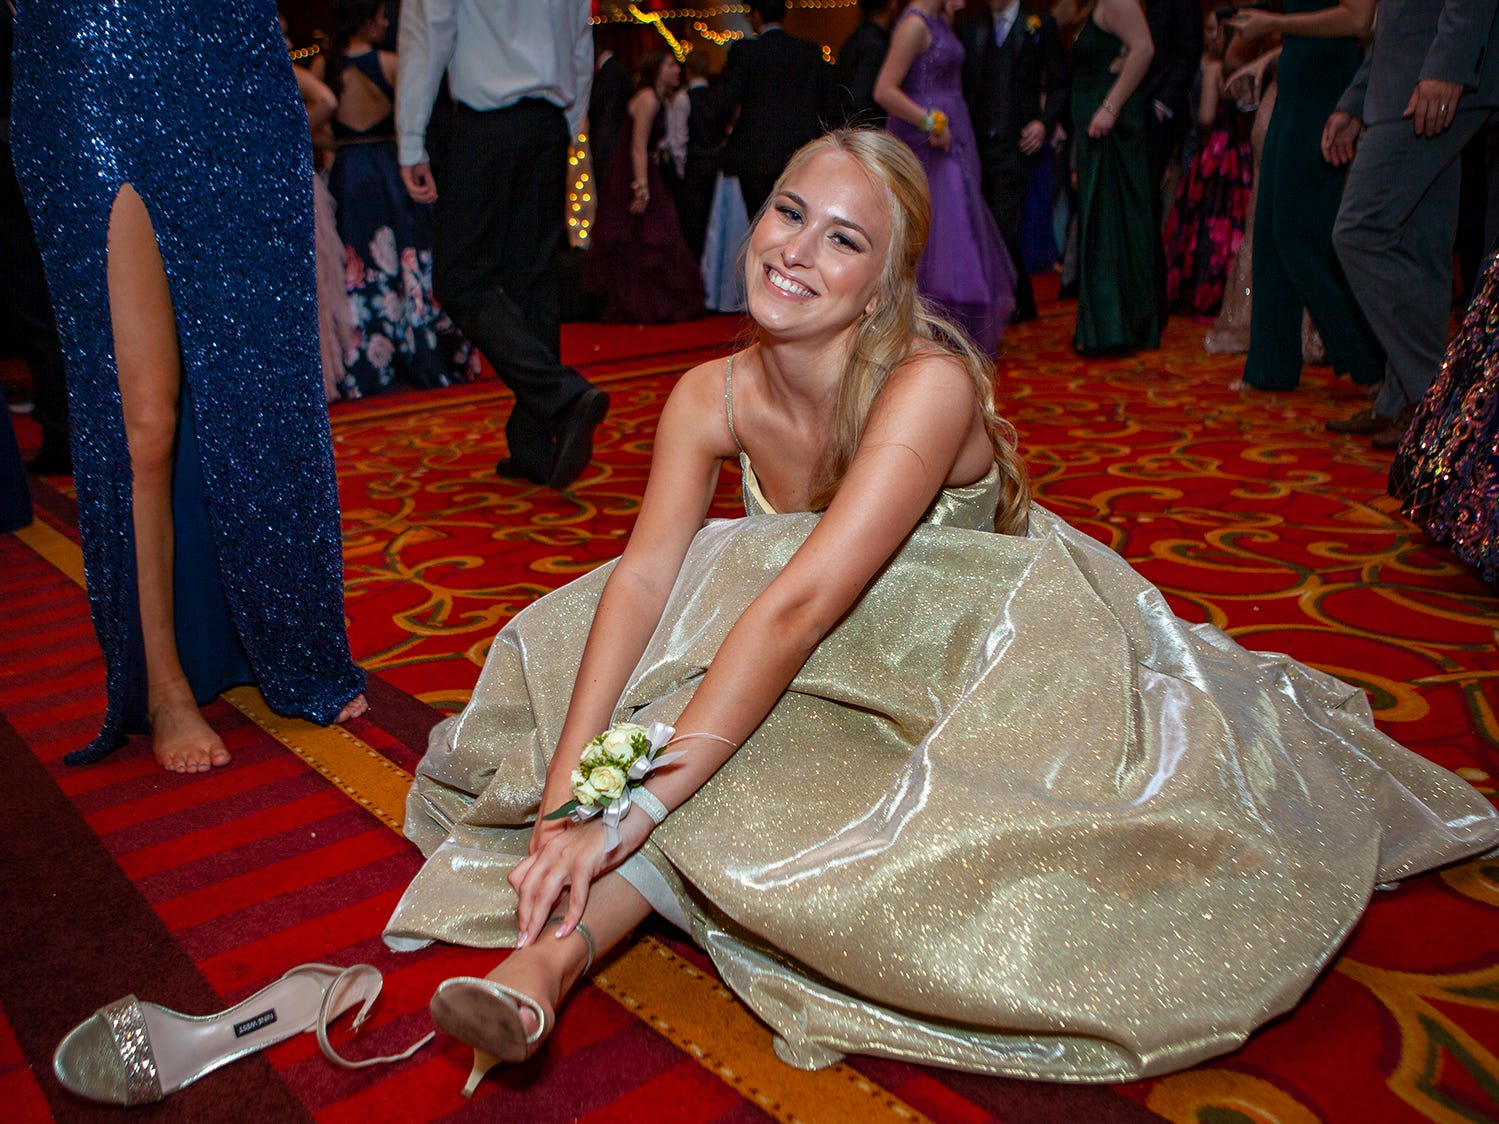 Caroline Coleman takes off her shoes at Central Magnet School's prom Saturday, April 6 at Embassy Suites in Murfreesboro.